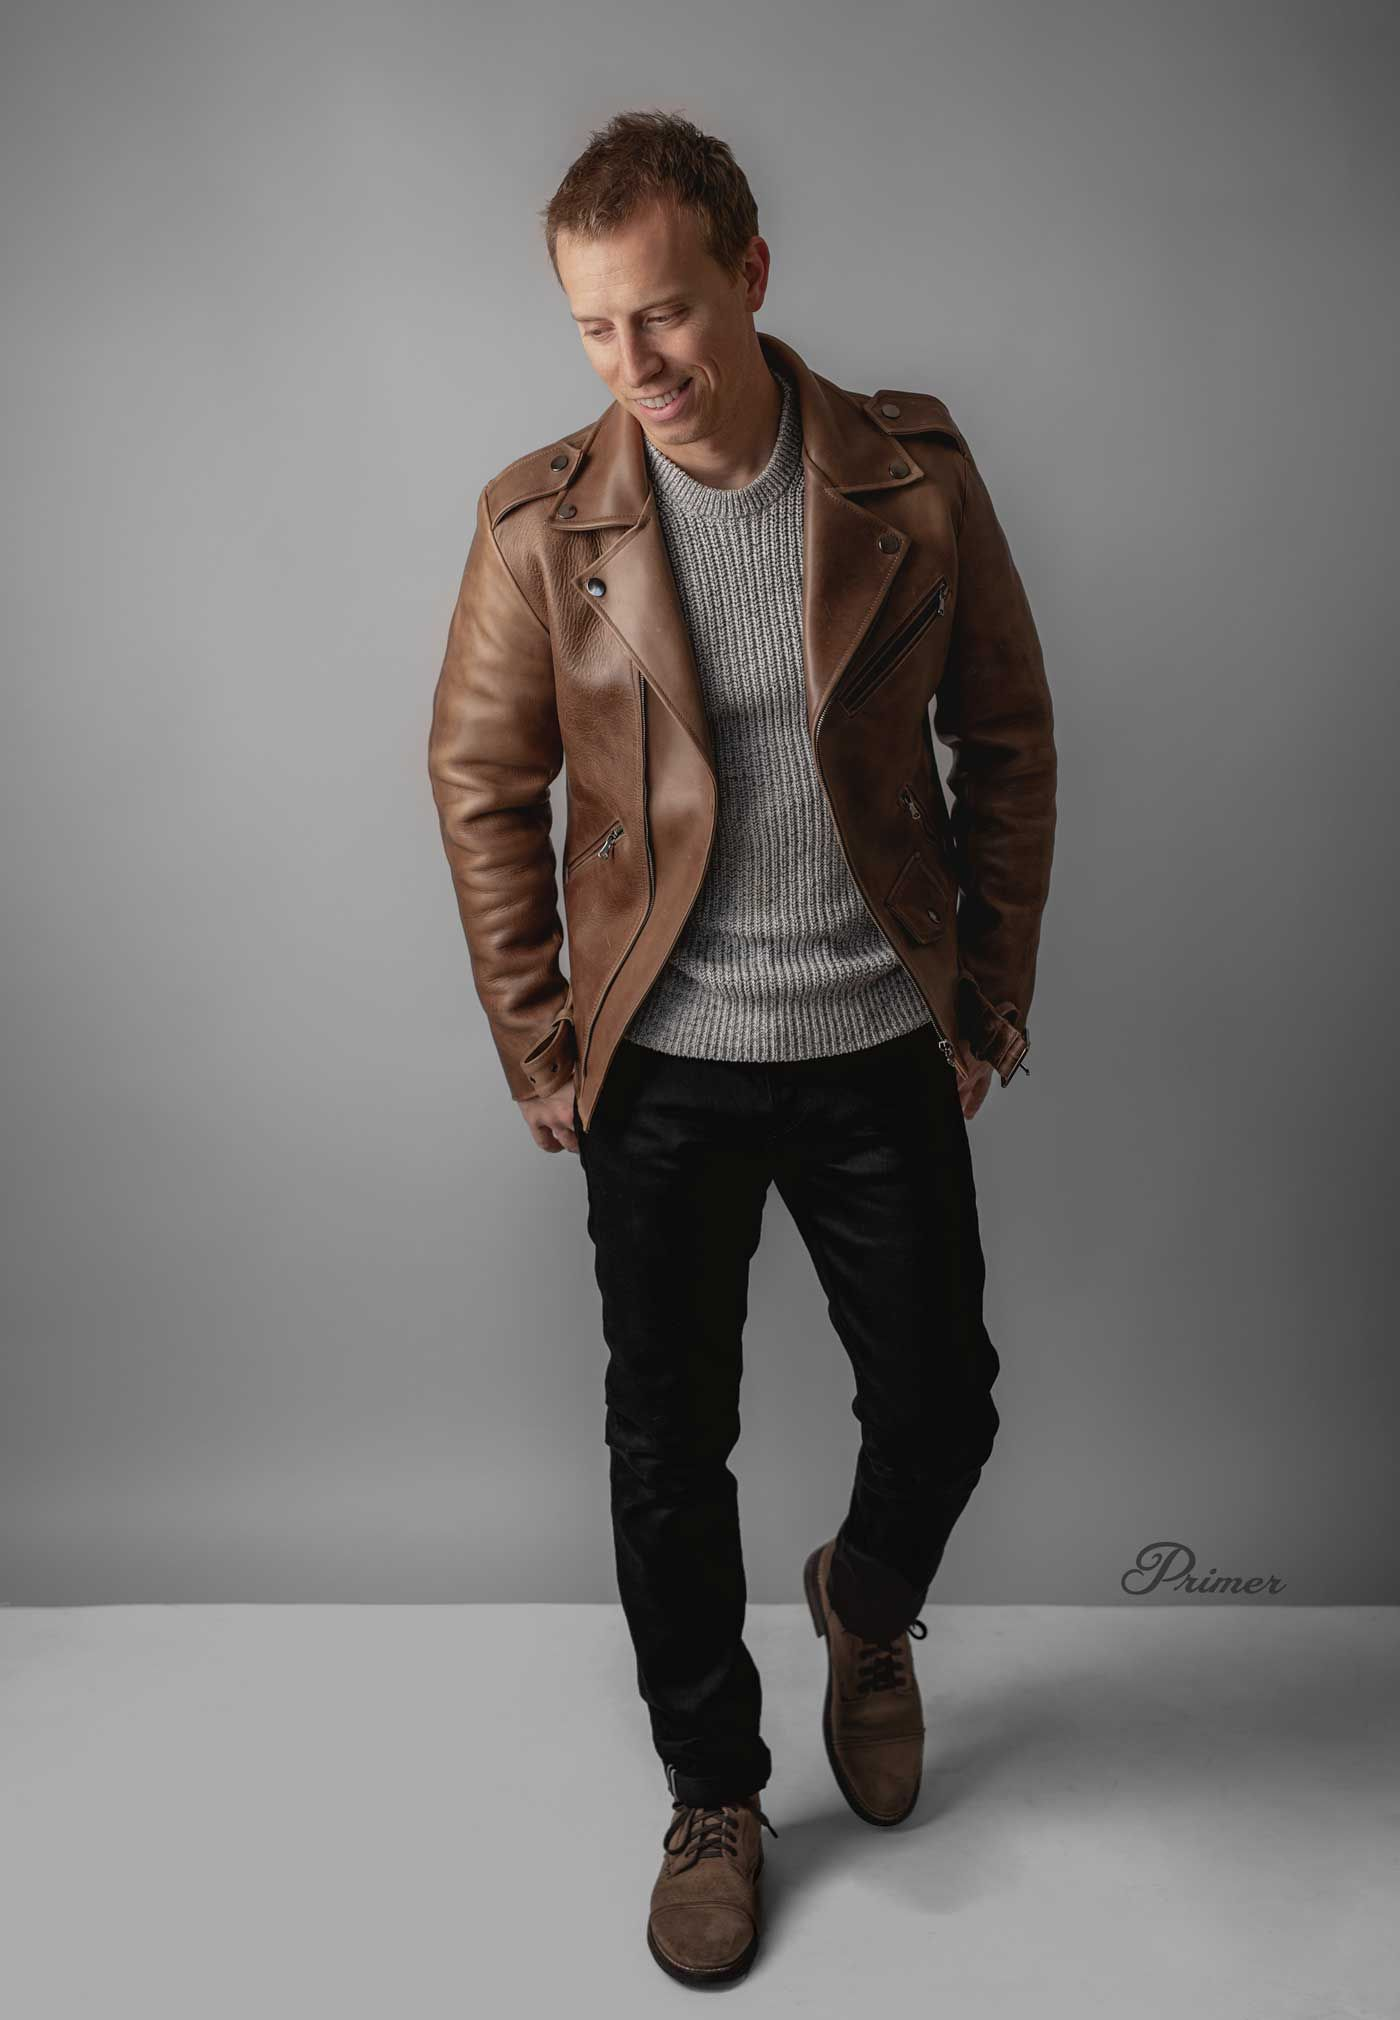 These 7 Shoppable Outfits Prove You Can Pull Off A Brown Leather Jacket Brown Leather Jacket Men Leather Jacket Outfit Men Brown Leather Jacket